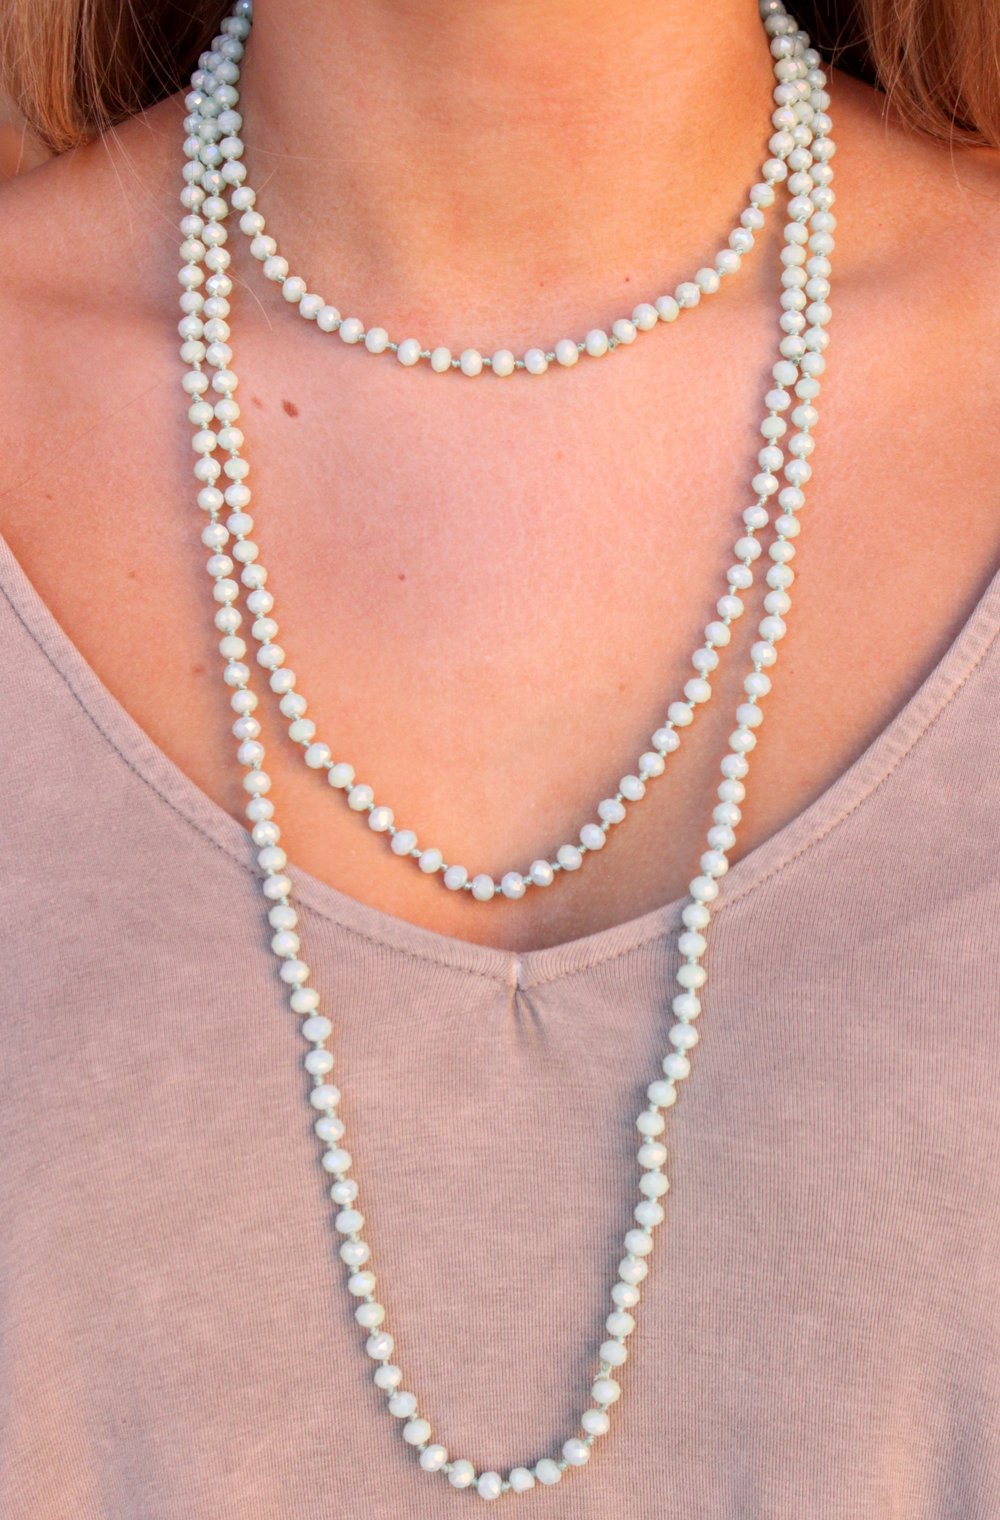 80 inch hand-knotted beaded necklace